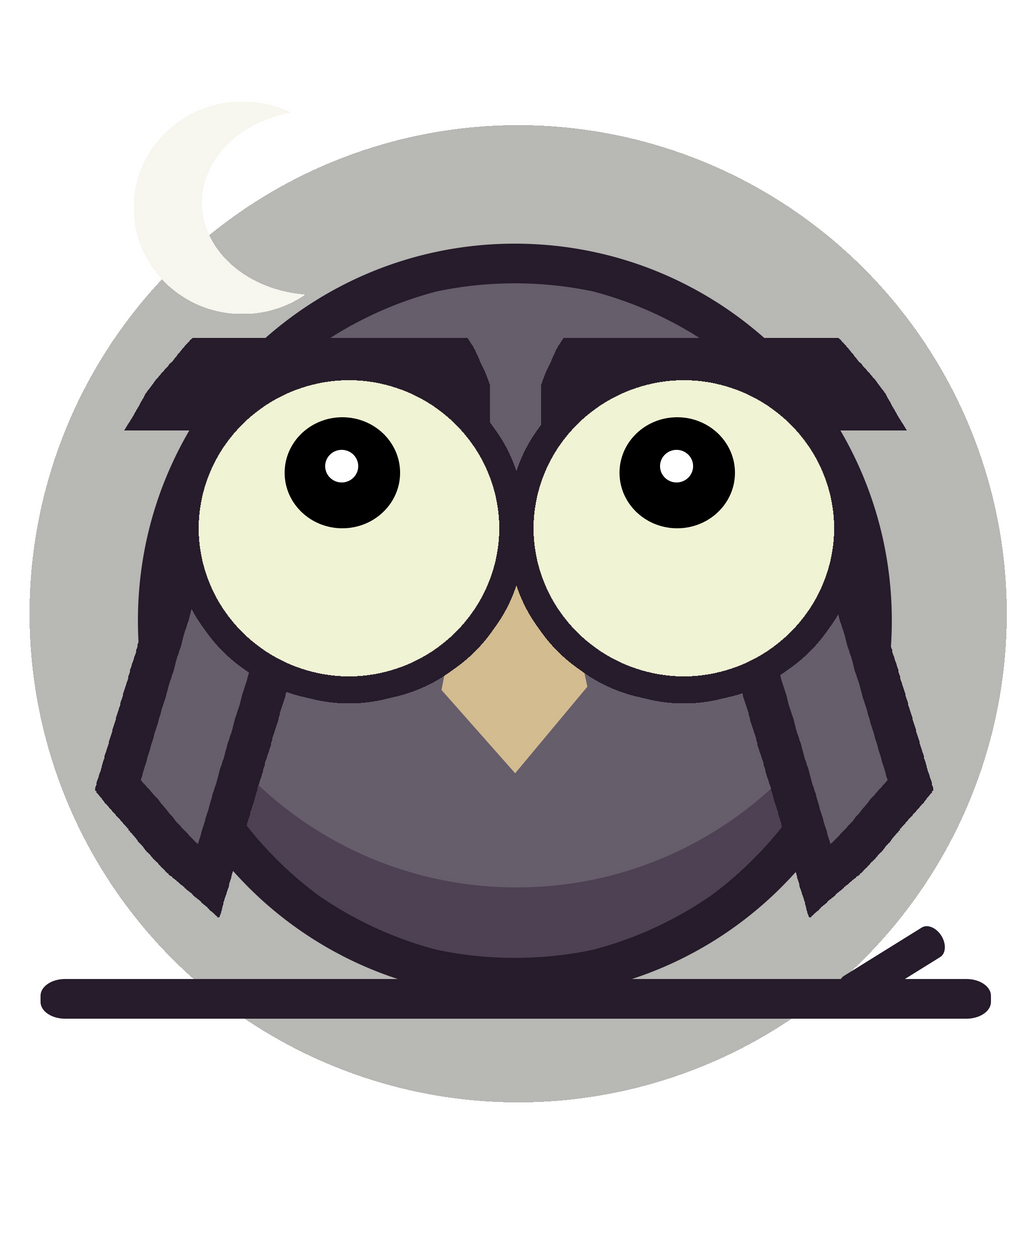 nightowlartwork's Profile Picture